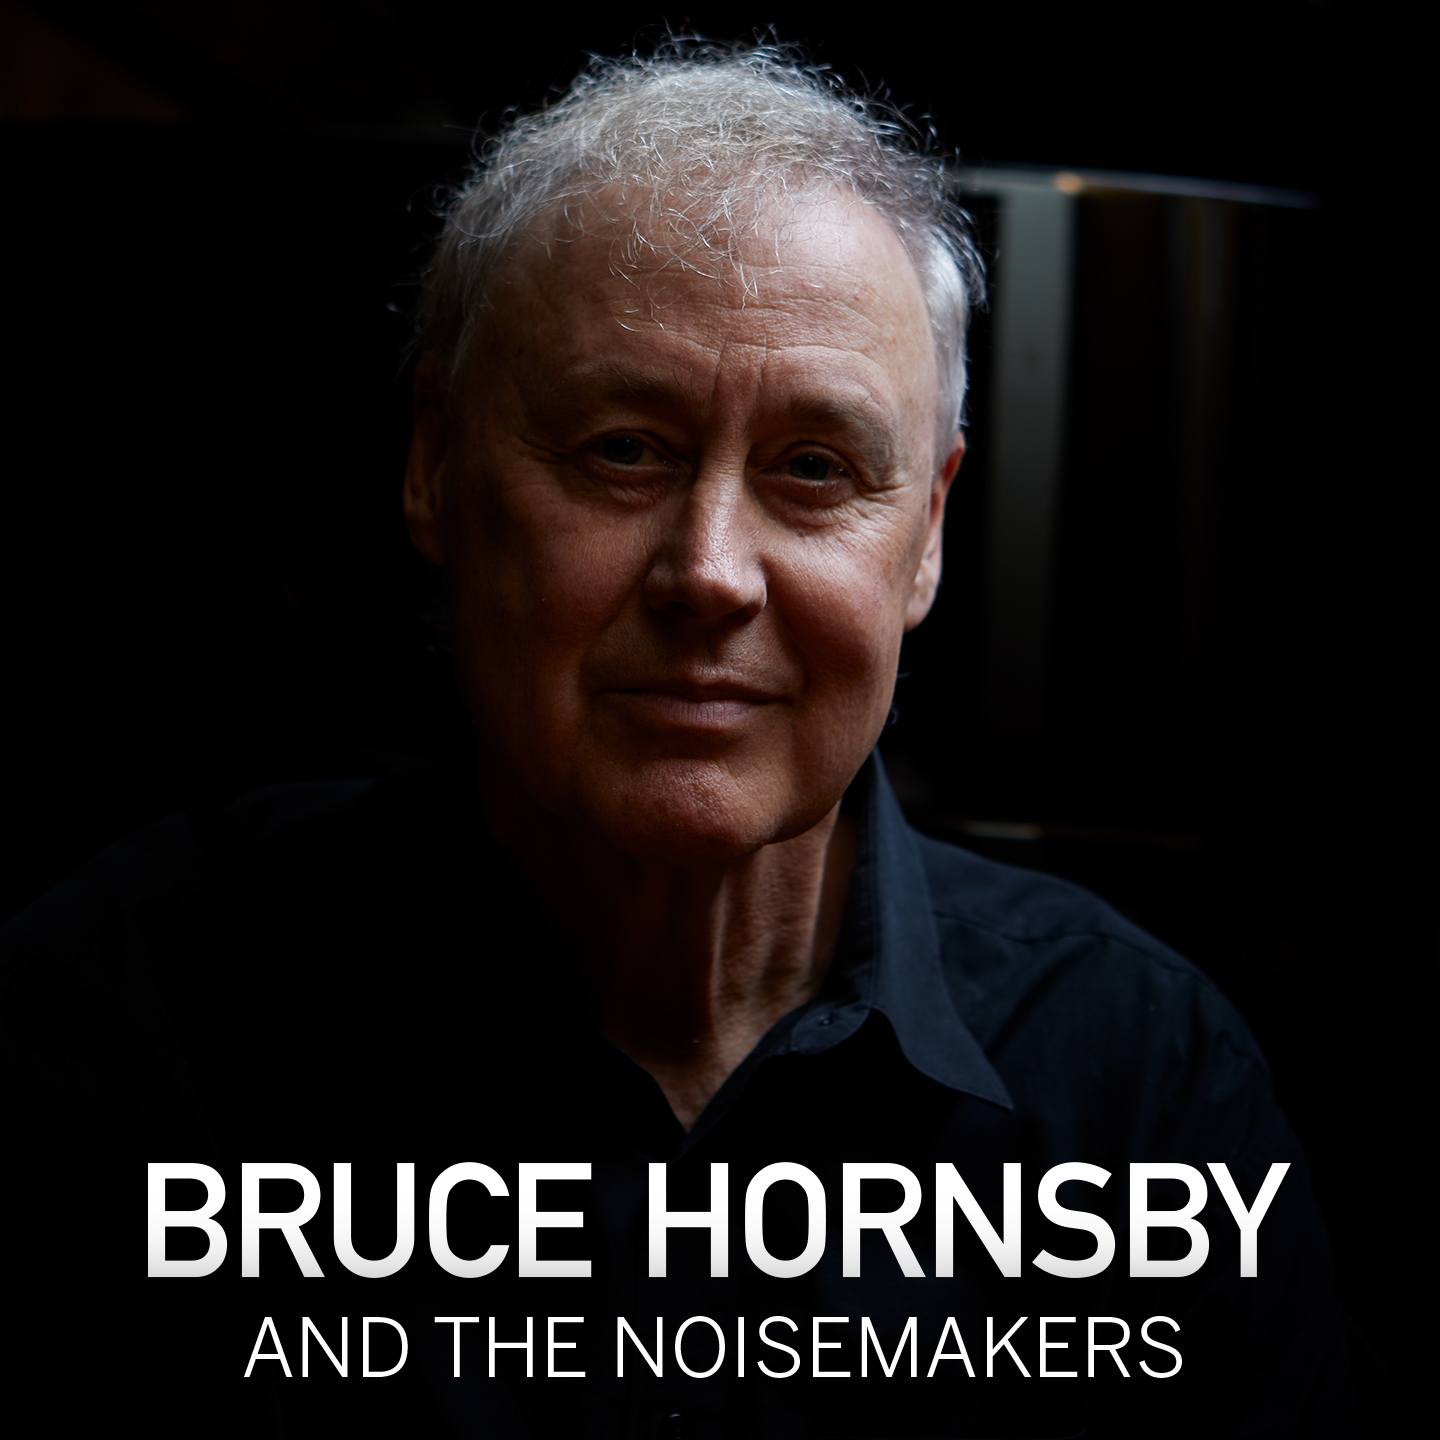 Bruce Hornsby and The Noisemakers @ Knight Theater at Levine Center for the Arts